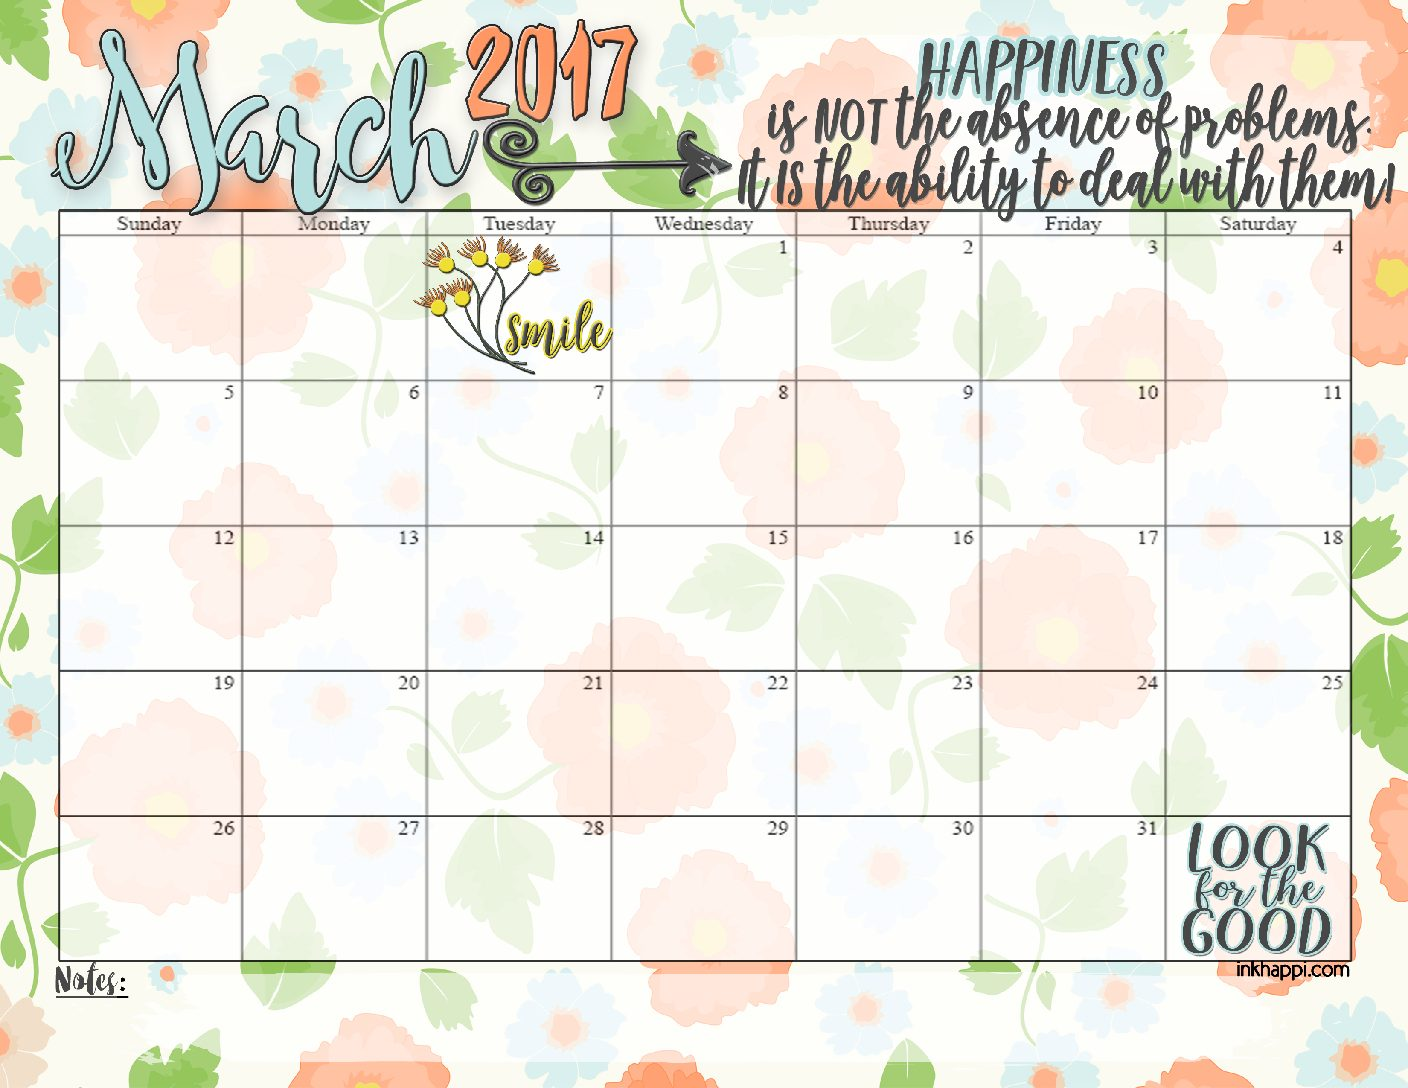 MARCH 2017 calendar and print from inkhappi.